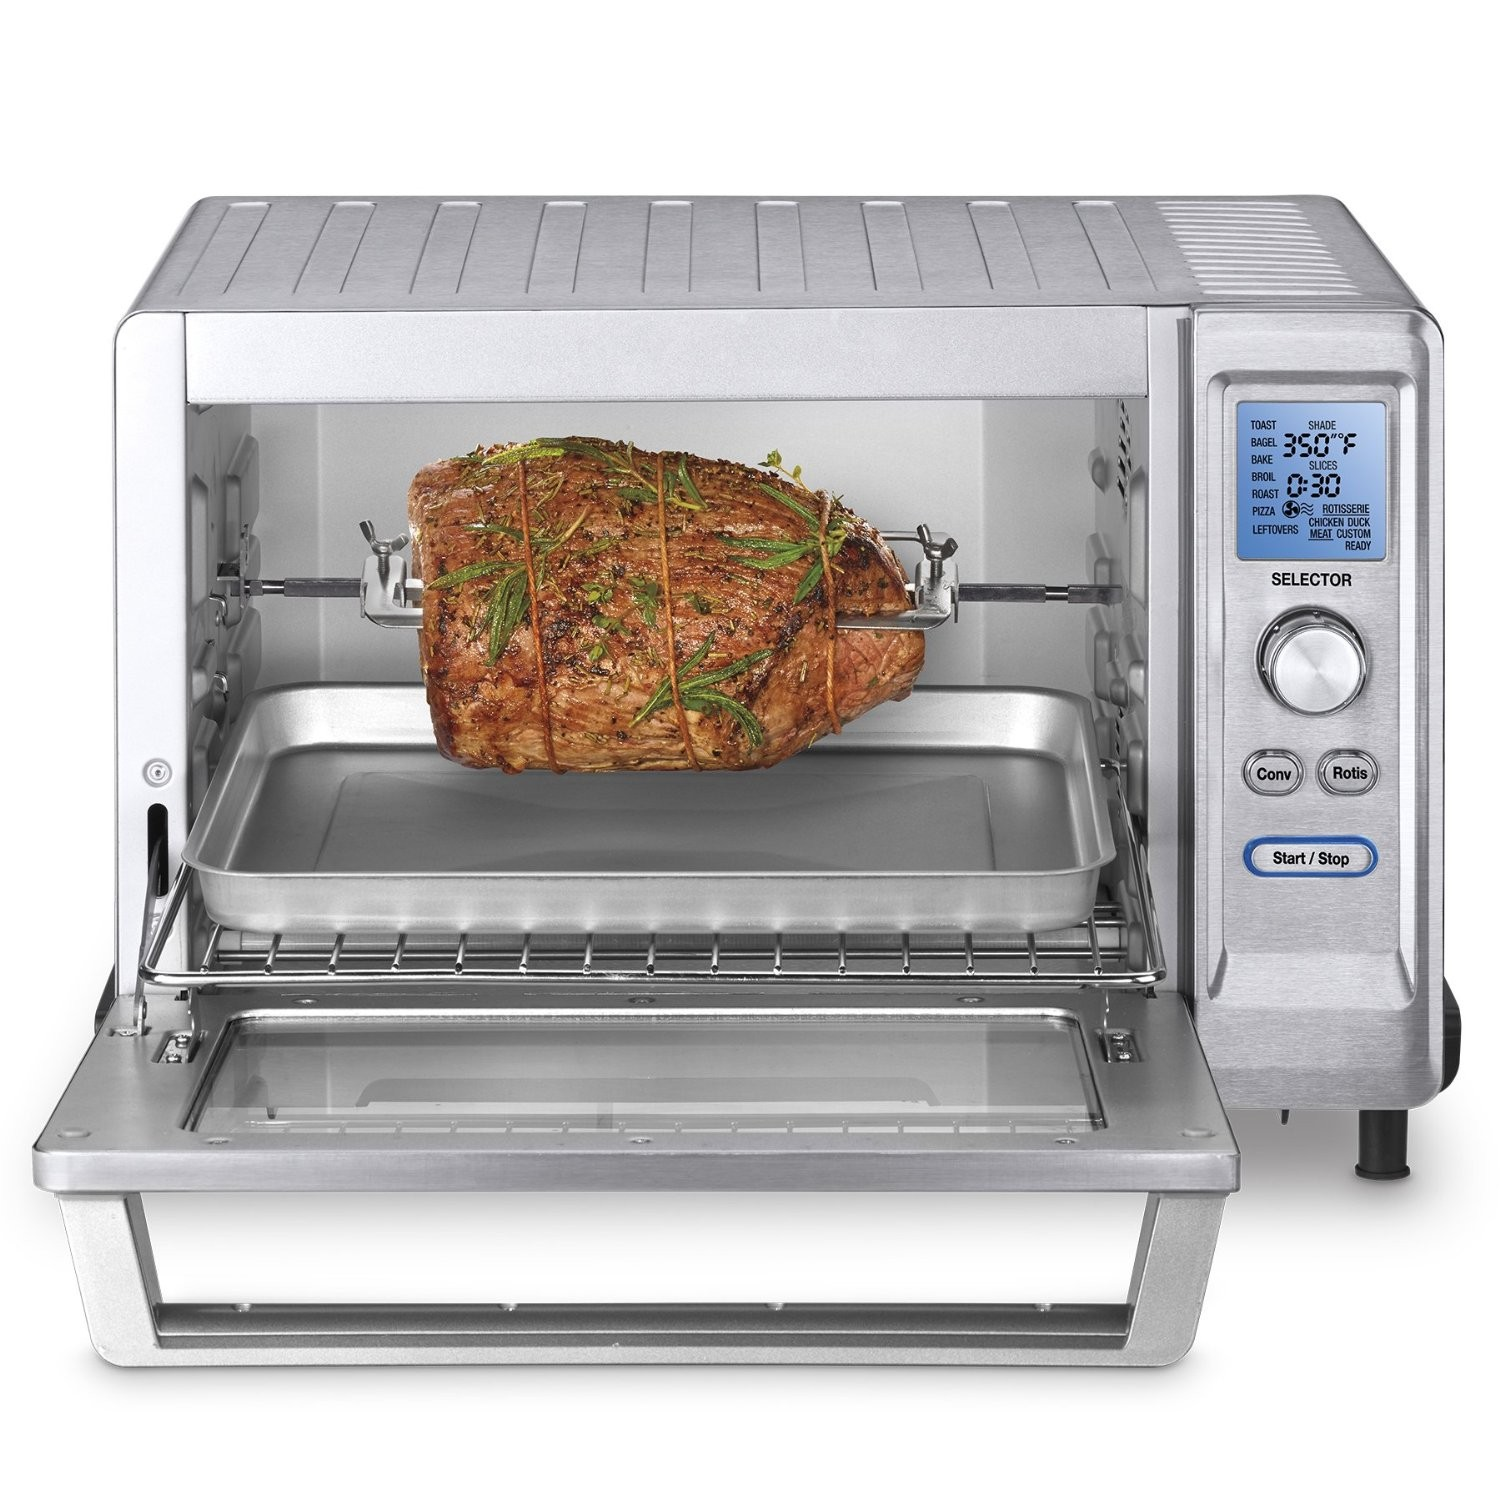 countertop convection oven how to use  Cuisinart TOB-200 Rotisserie Convection Toaster Oven Review - countertop convection oven how to use